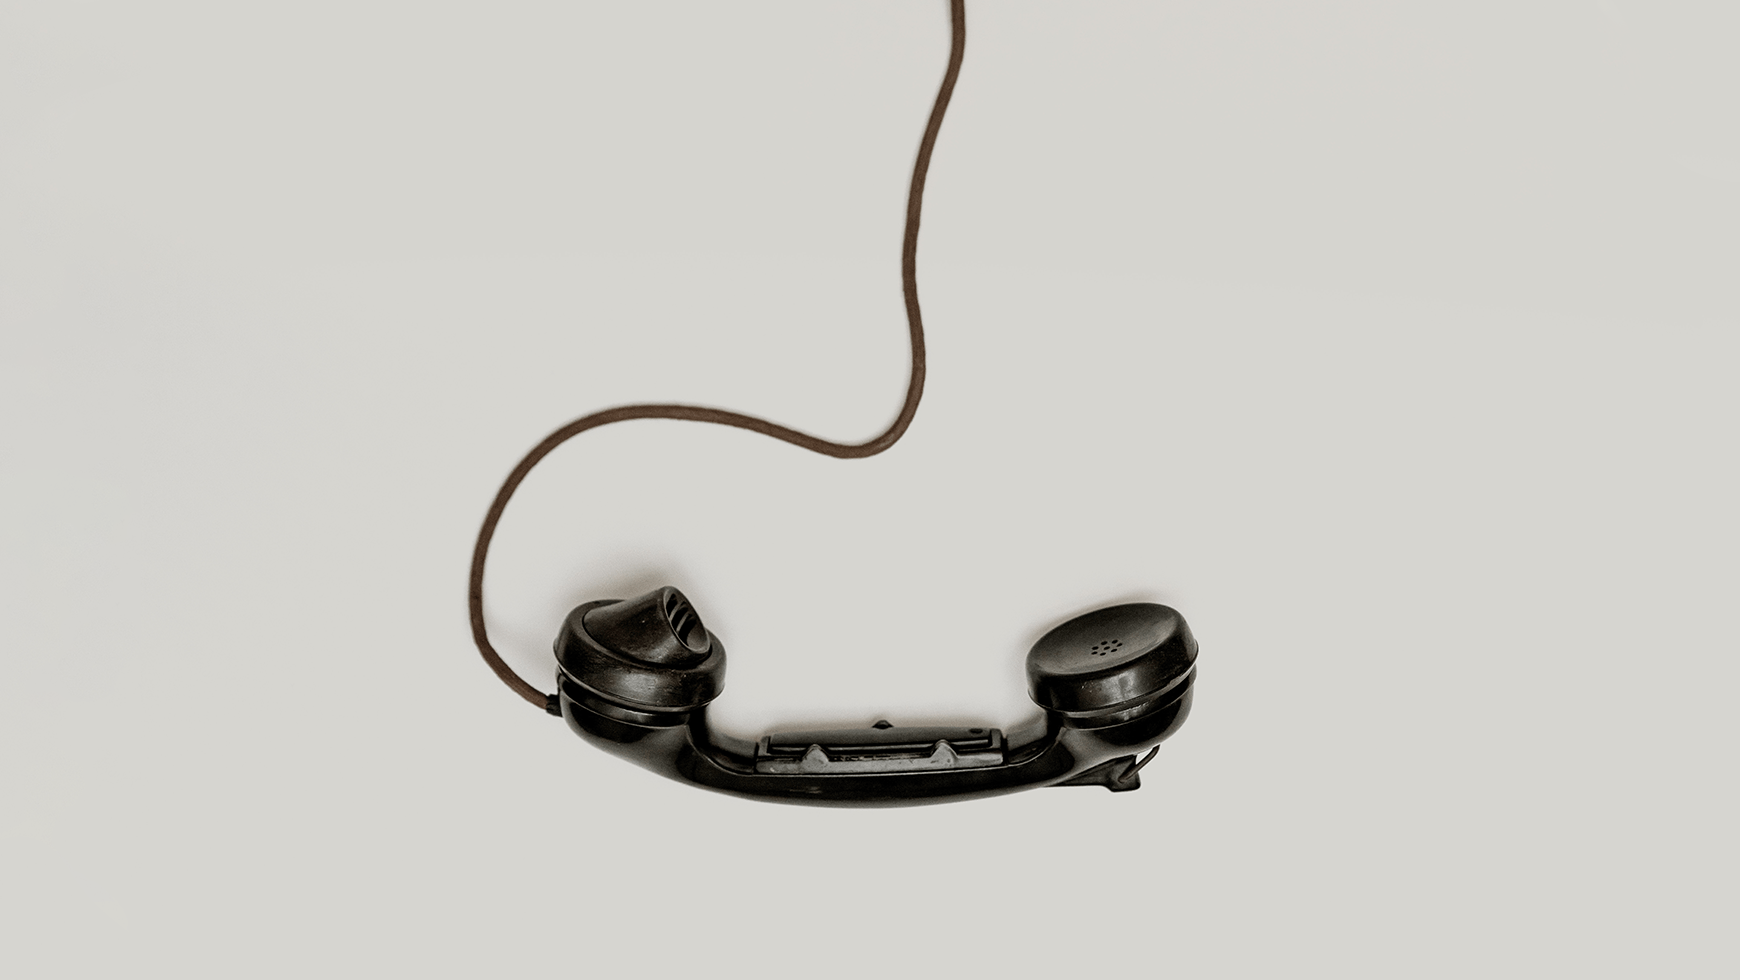 minit-black-corded-telephone-on-the-table